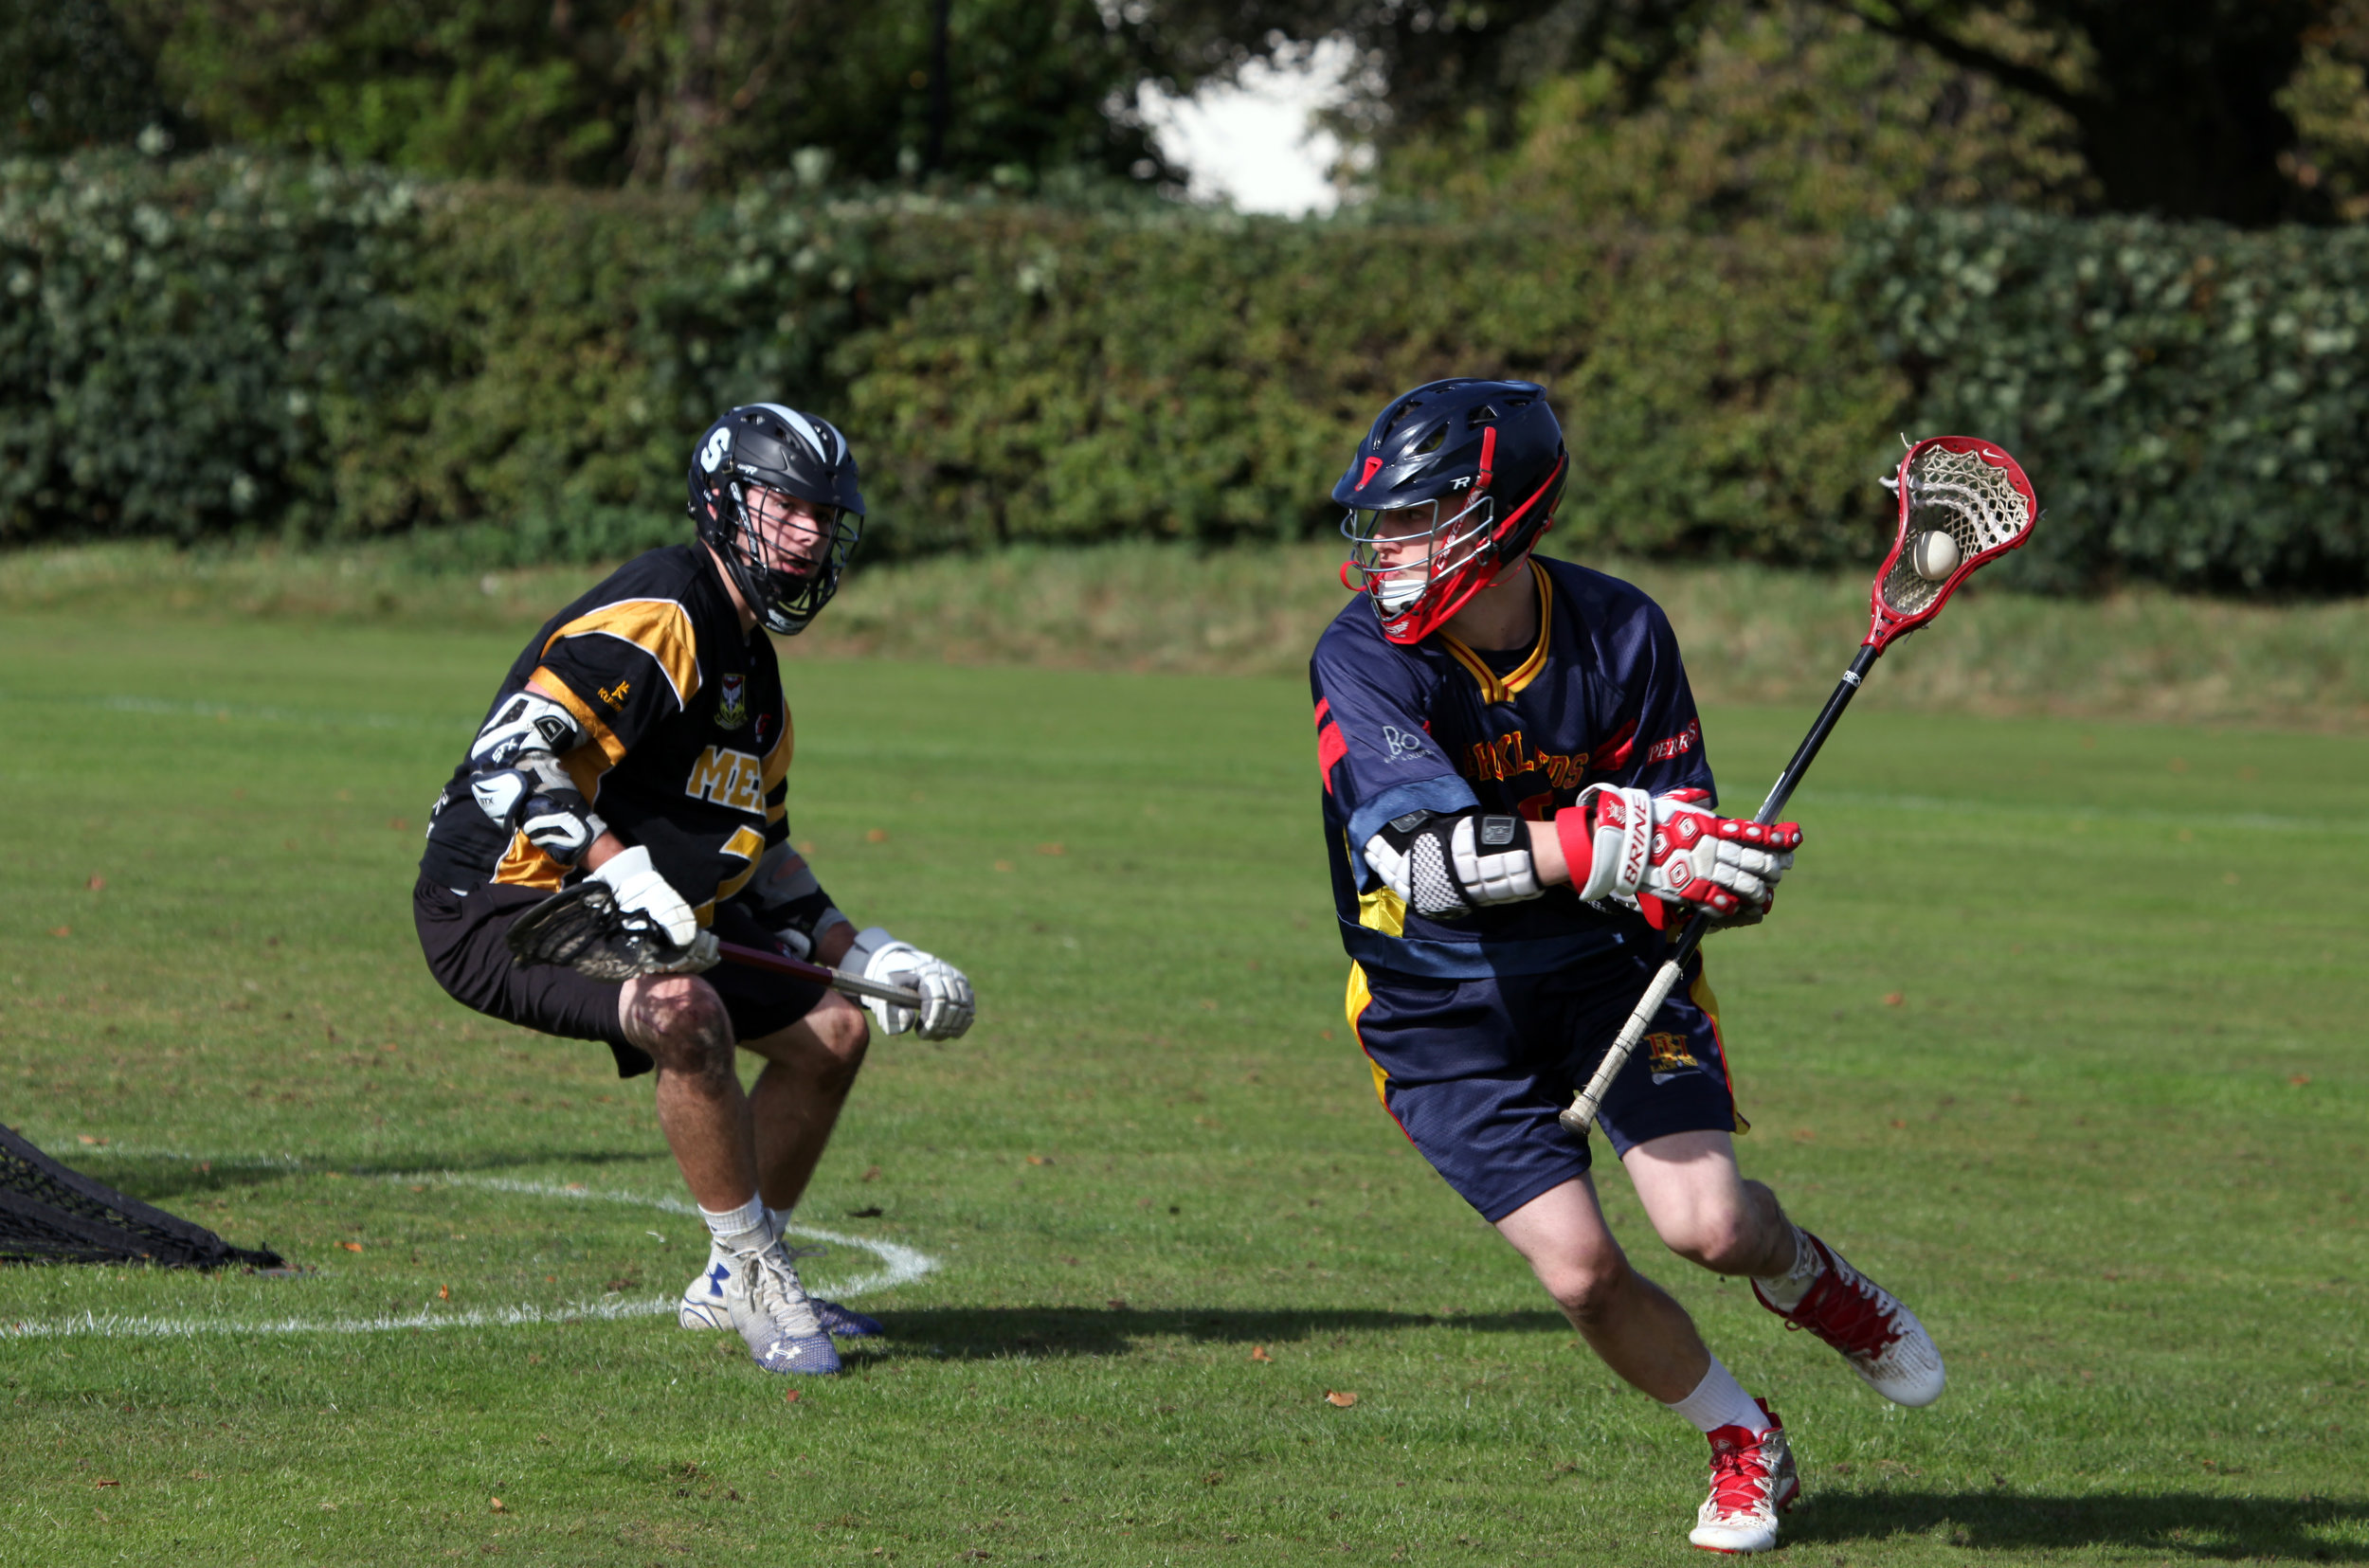 NEMLA League - Fixtures, results and tables from the North of England Men's Lacrosse Association